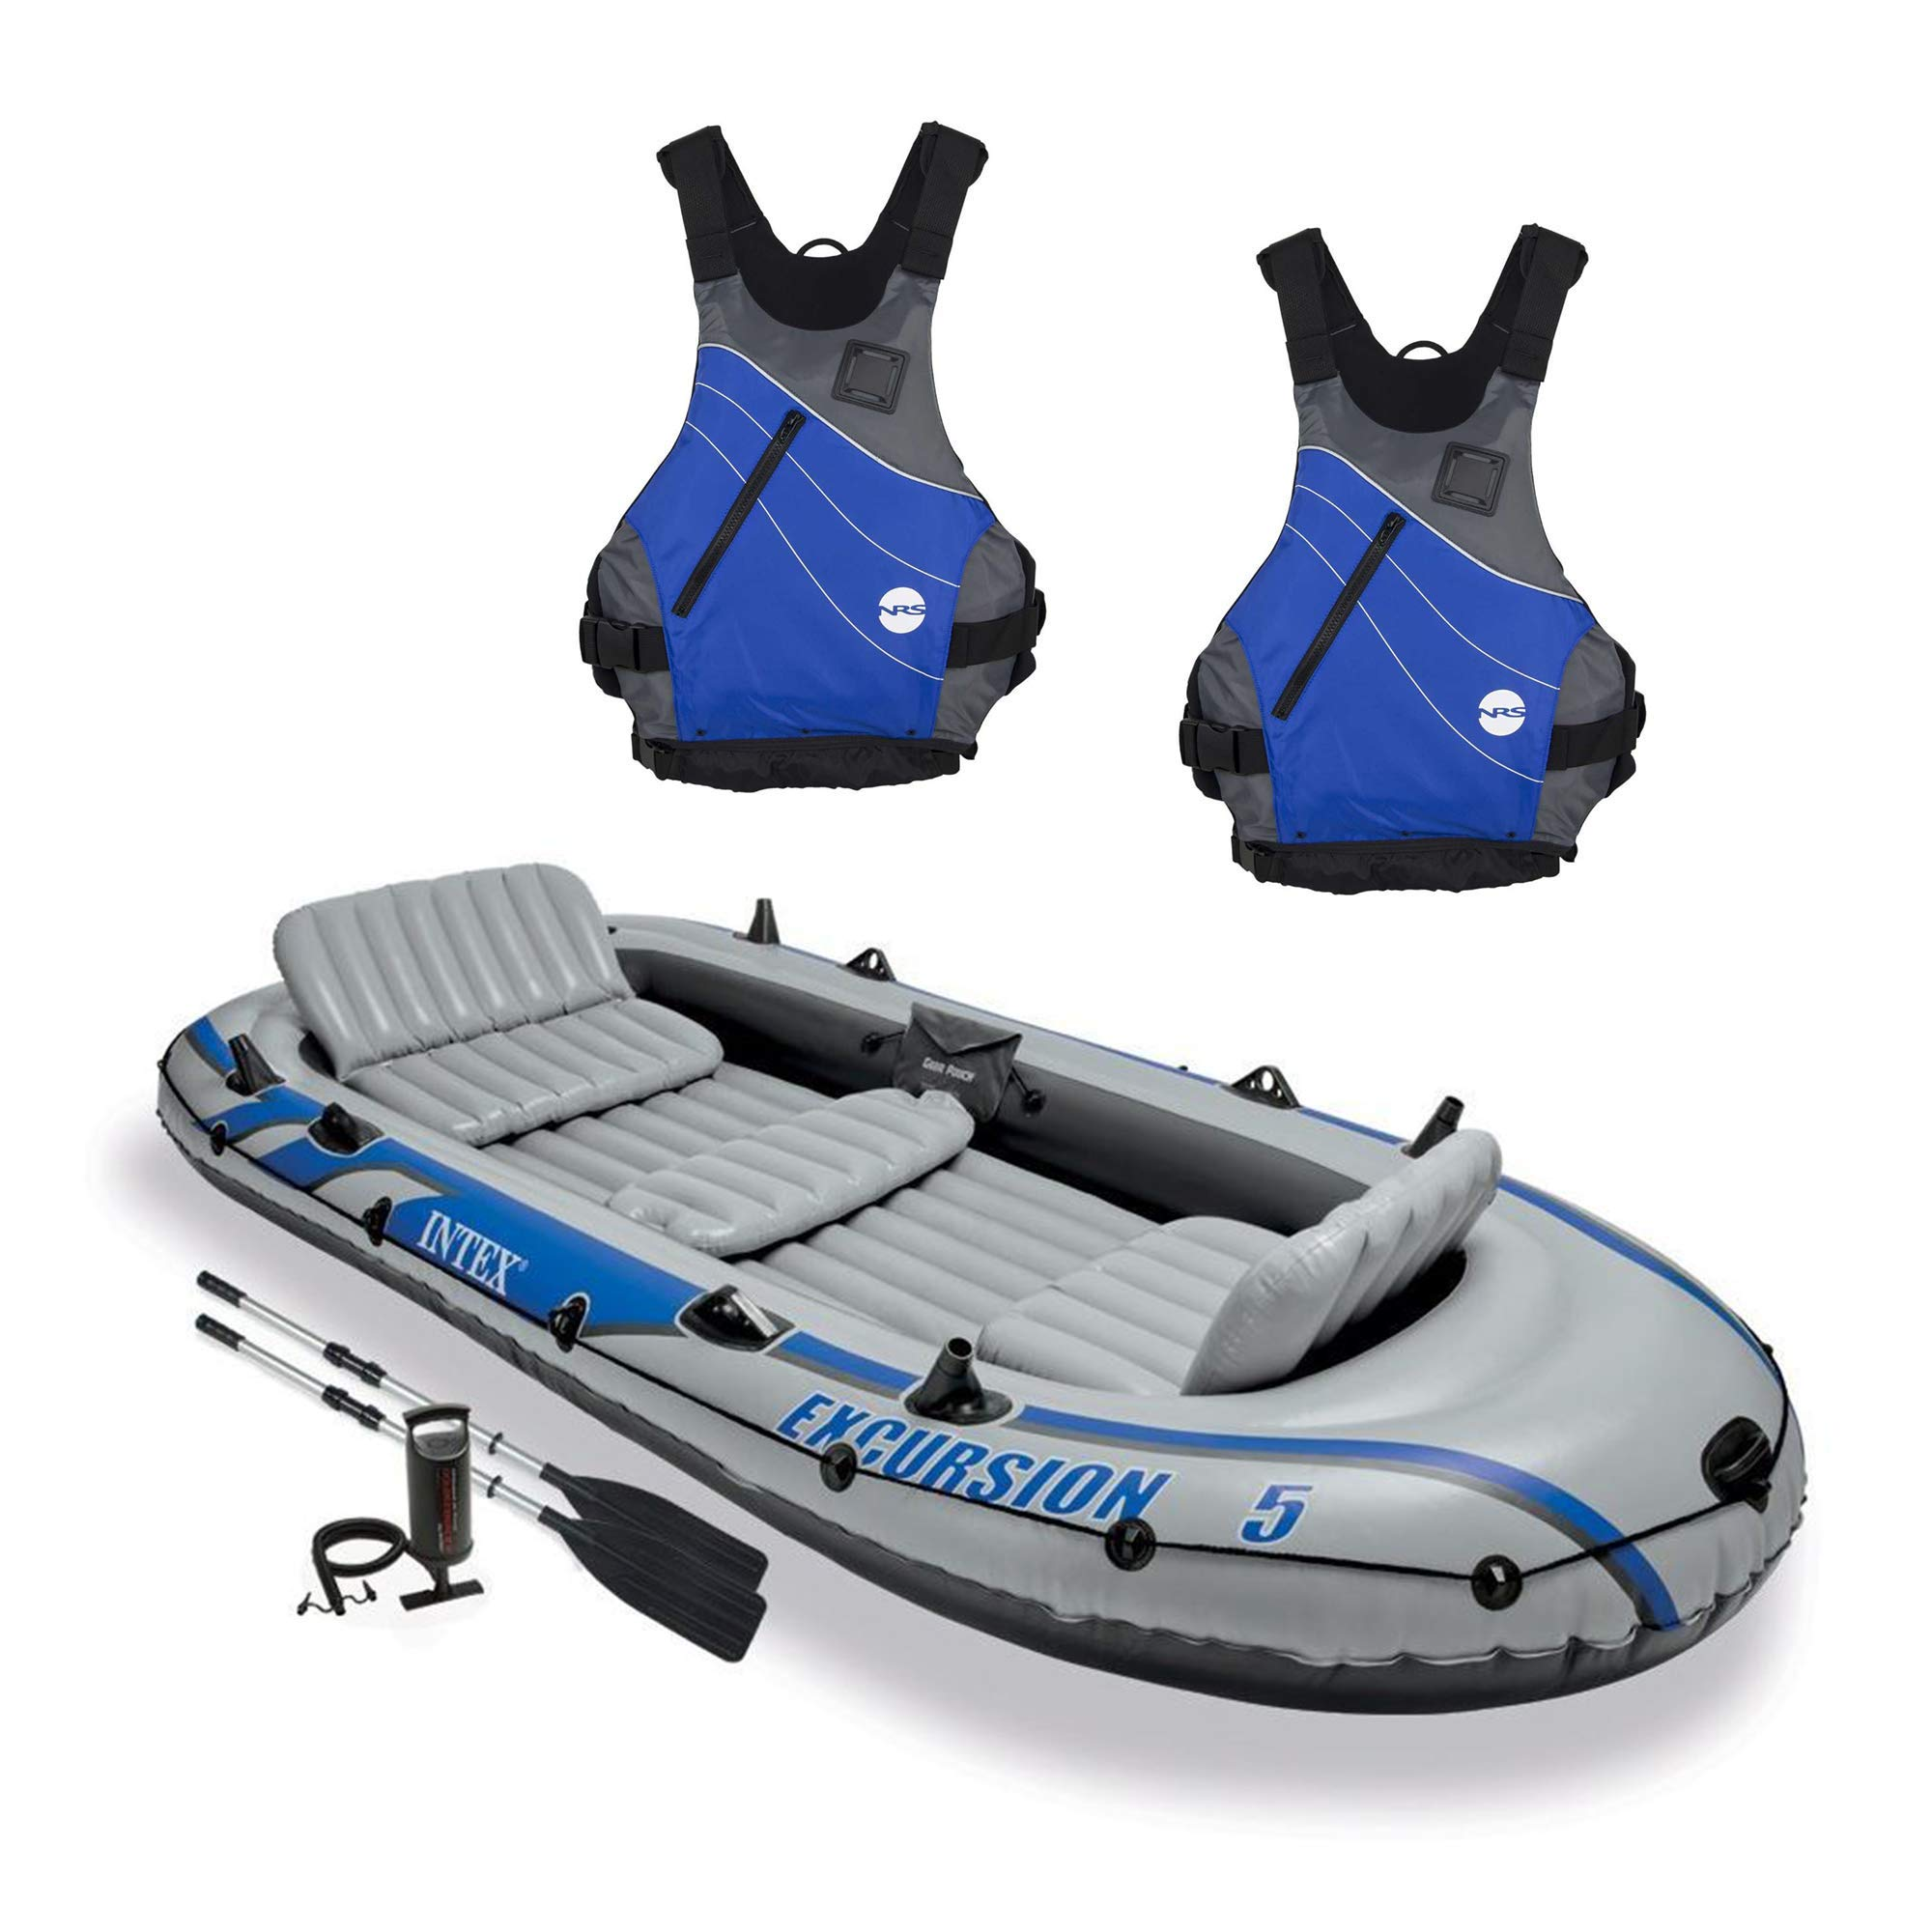 Intex Excursion 5 Person Inflatable Raft, 2 Oars & 2 Blue Life Jackets, Large XL